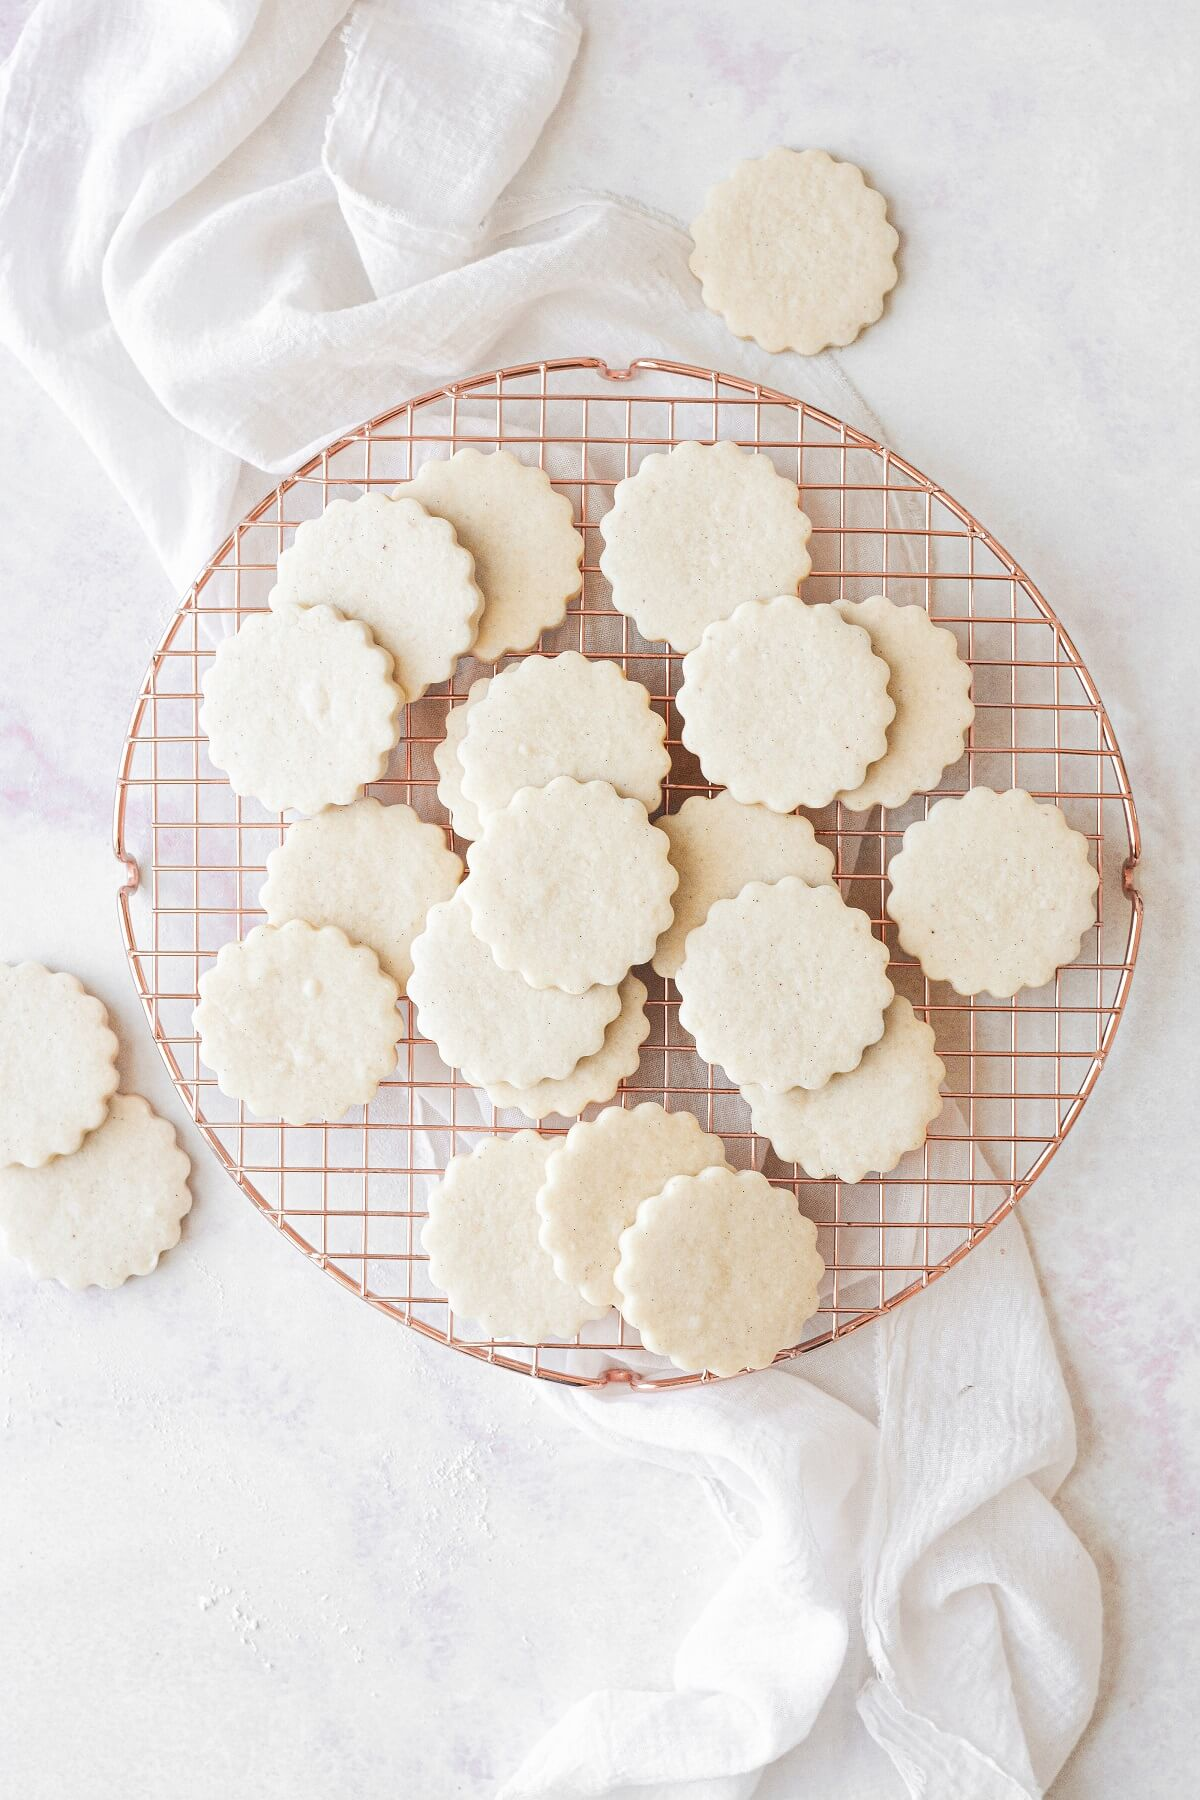 Shortbread cookies arranged on a cooling rack.